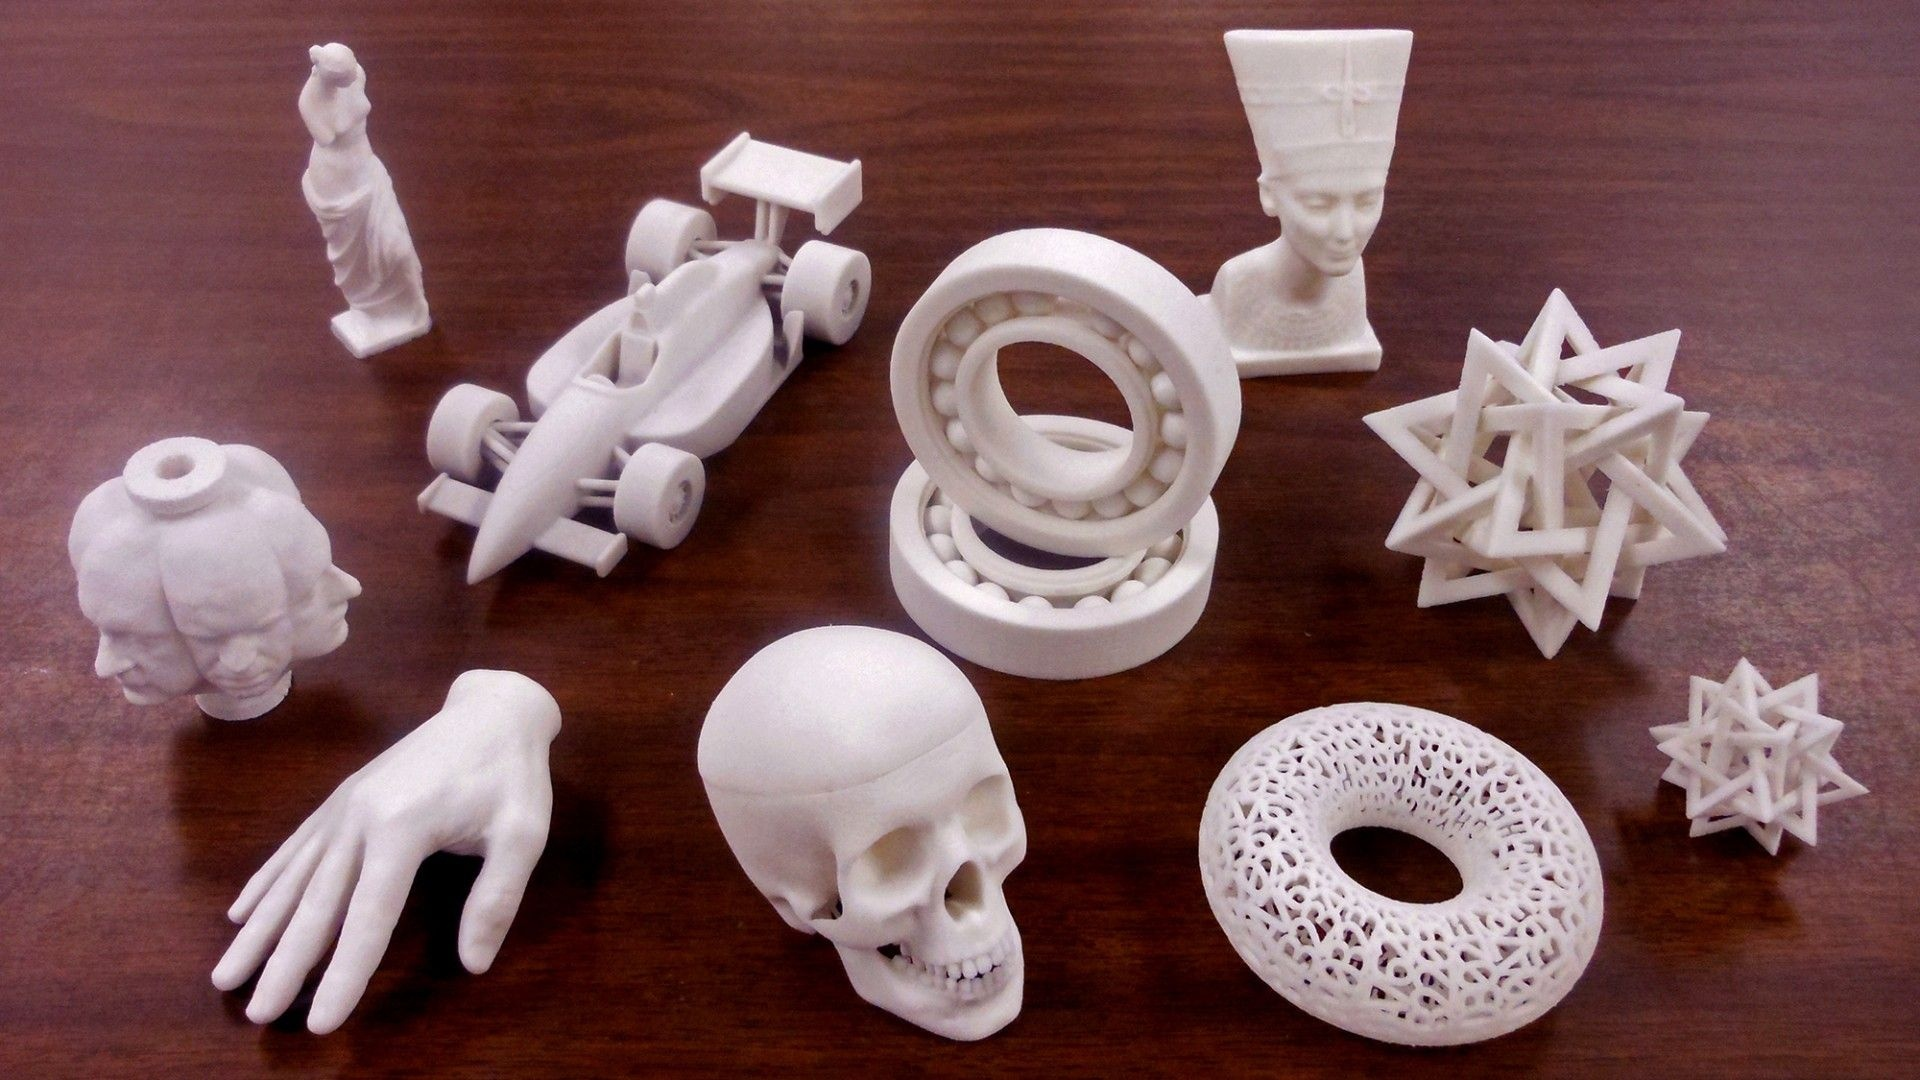 25 Best Sites To Download Free Stl Files To 3D Print | All3Dp Maybe - Free 3D Printable Models